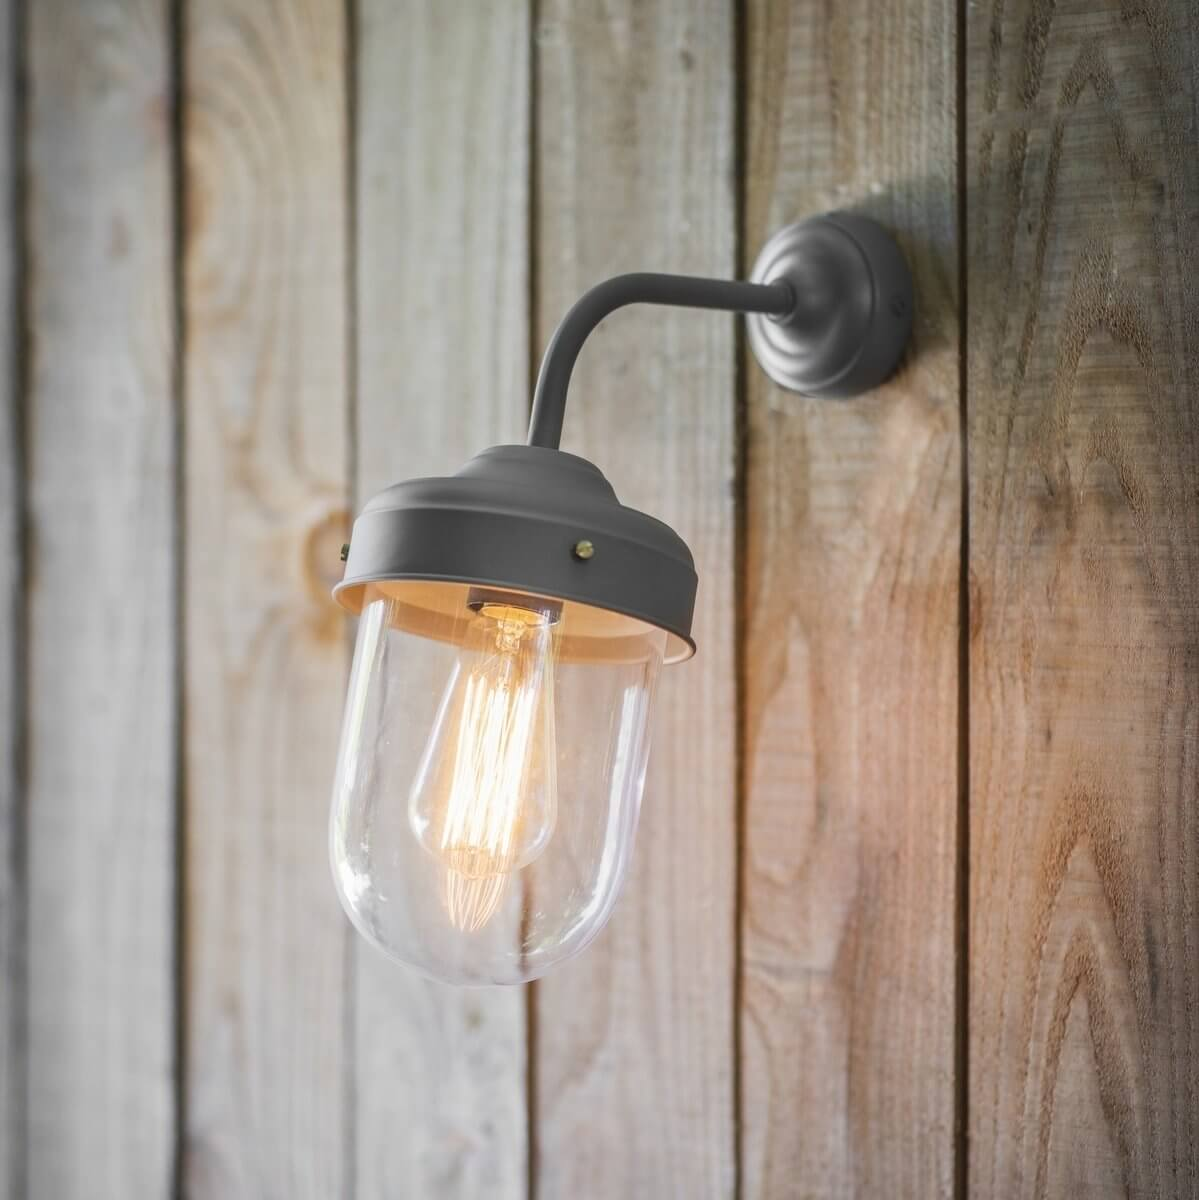 the mount homestead beauty bathroom fixtures gooseneck lights toronto mounted of barn style for your outdoor warisan wall light lamp farmhouse vanities sconce photo